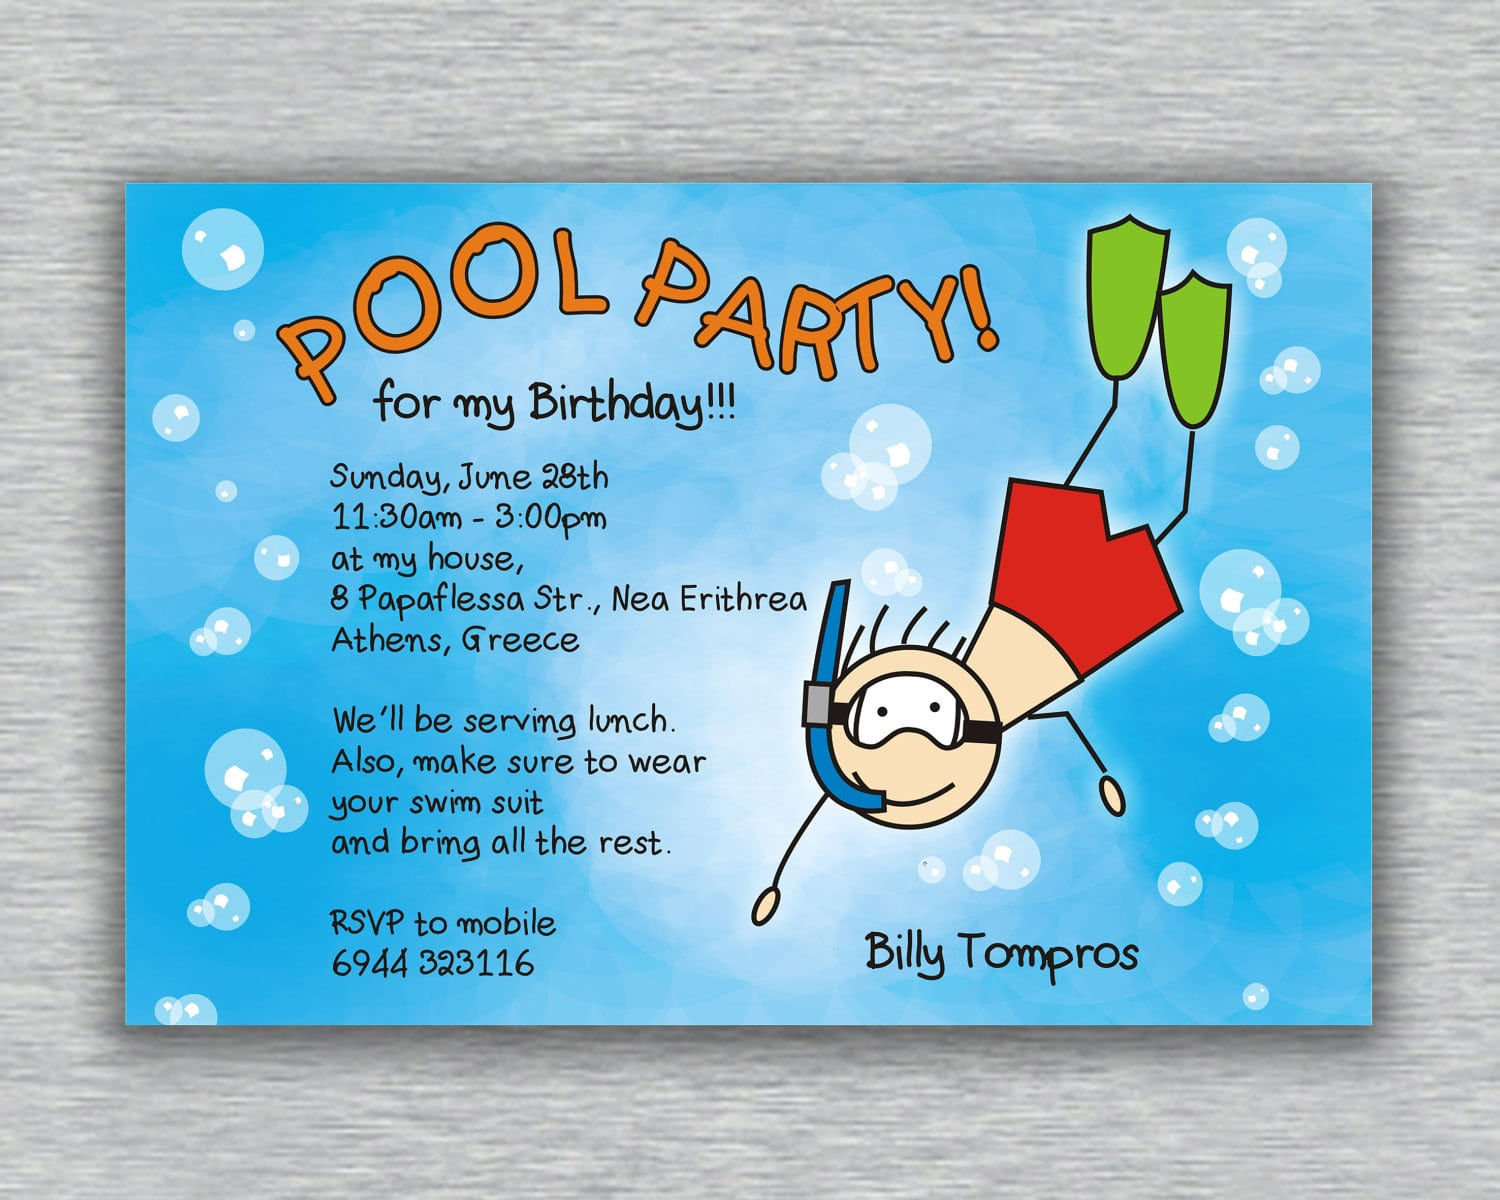 Pool Party Invitations Templates For Kids